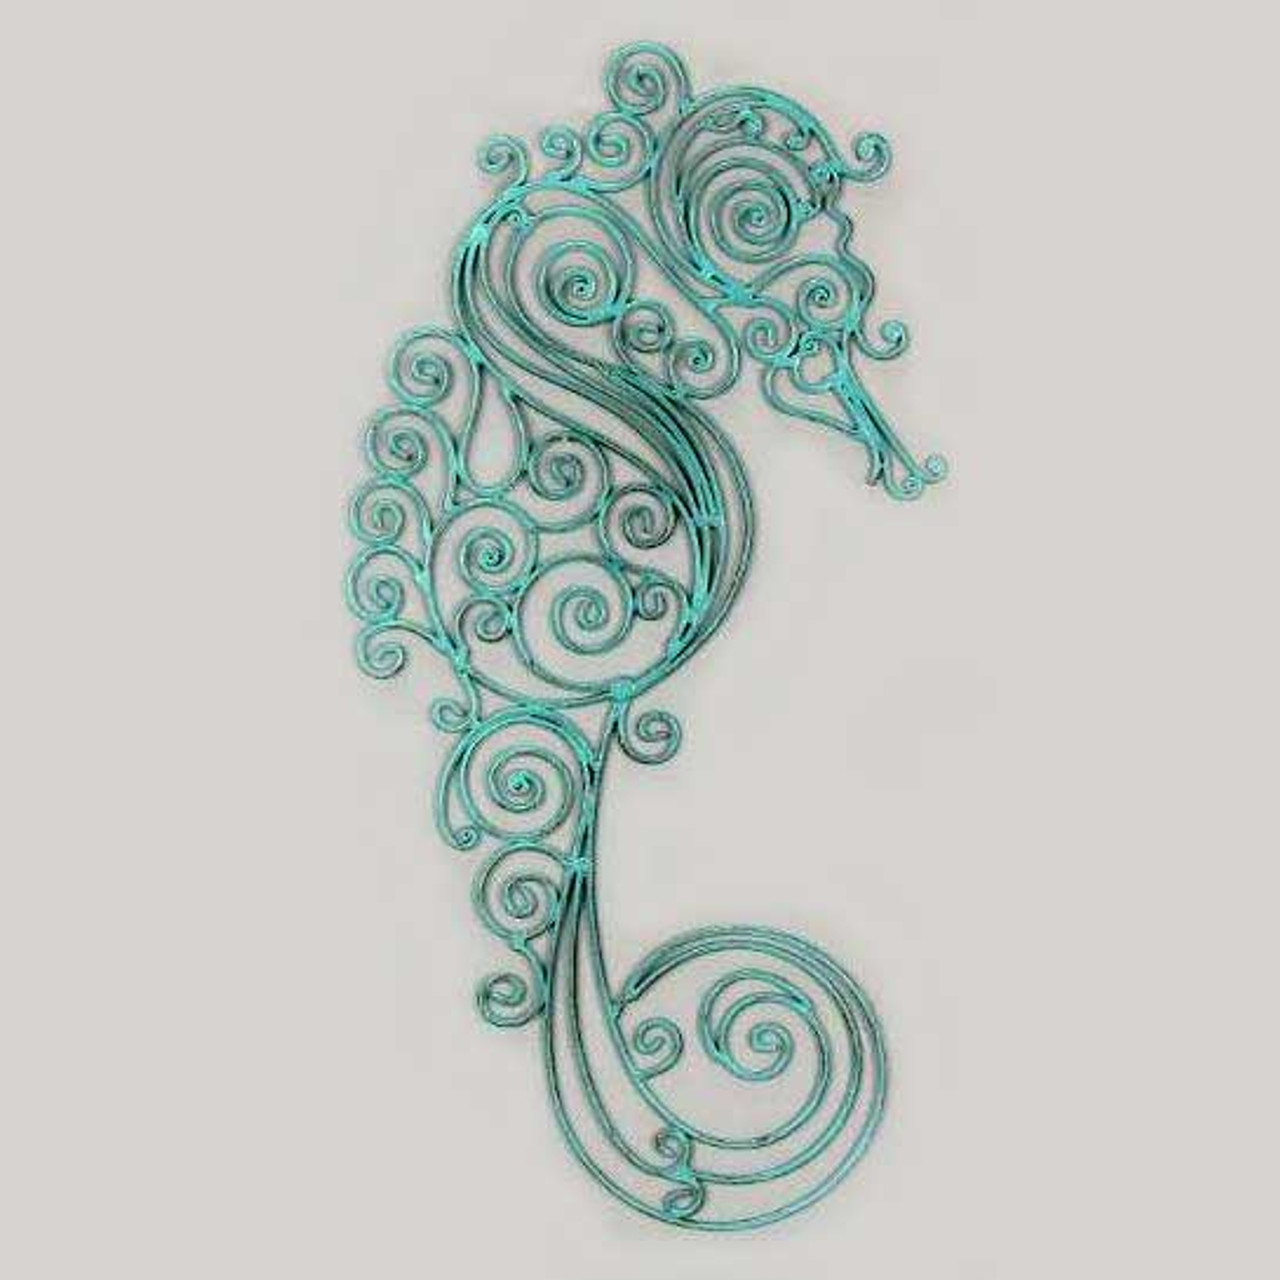 Seahorse Decorative Metal Wall Decor 22943 Colorfulcritters